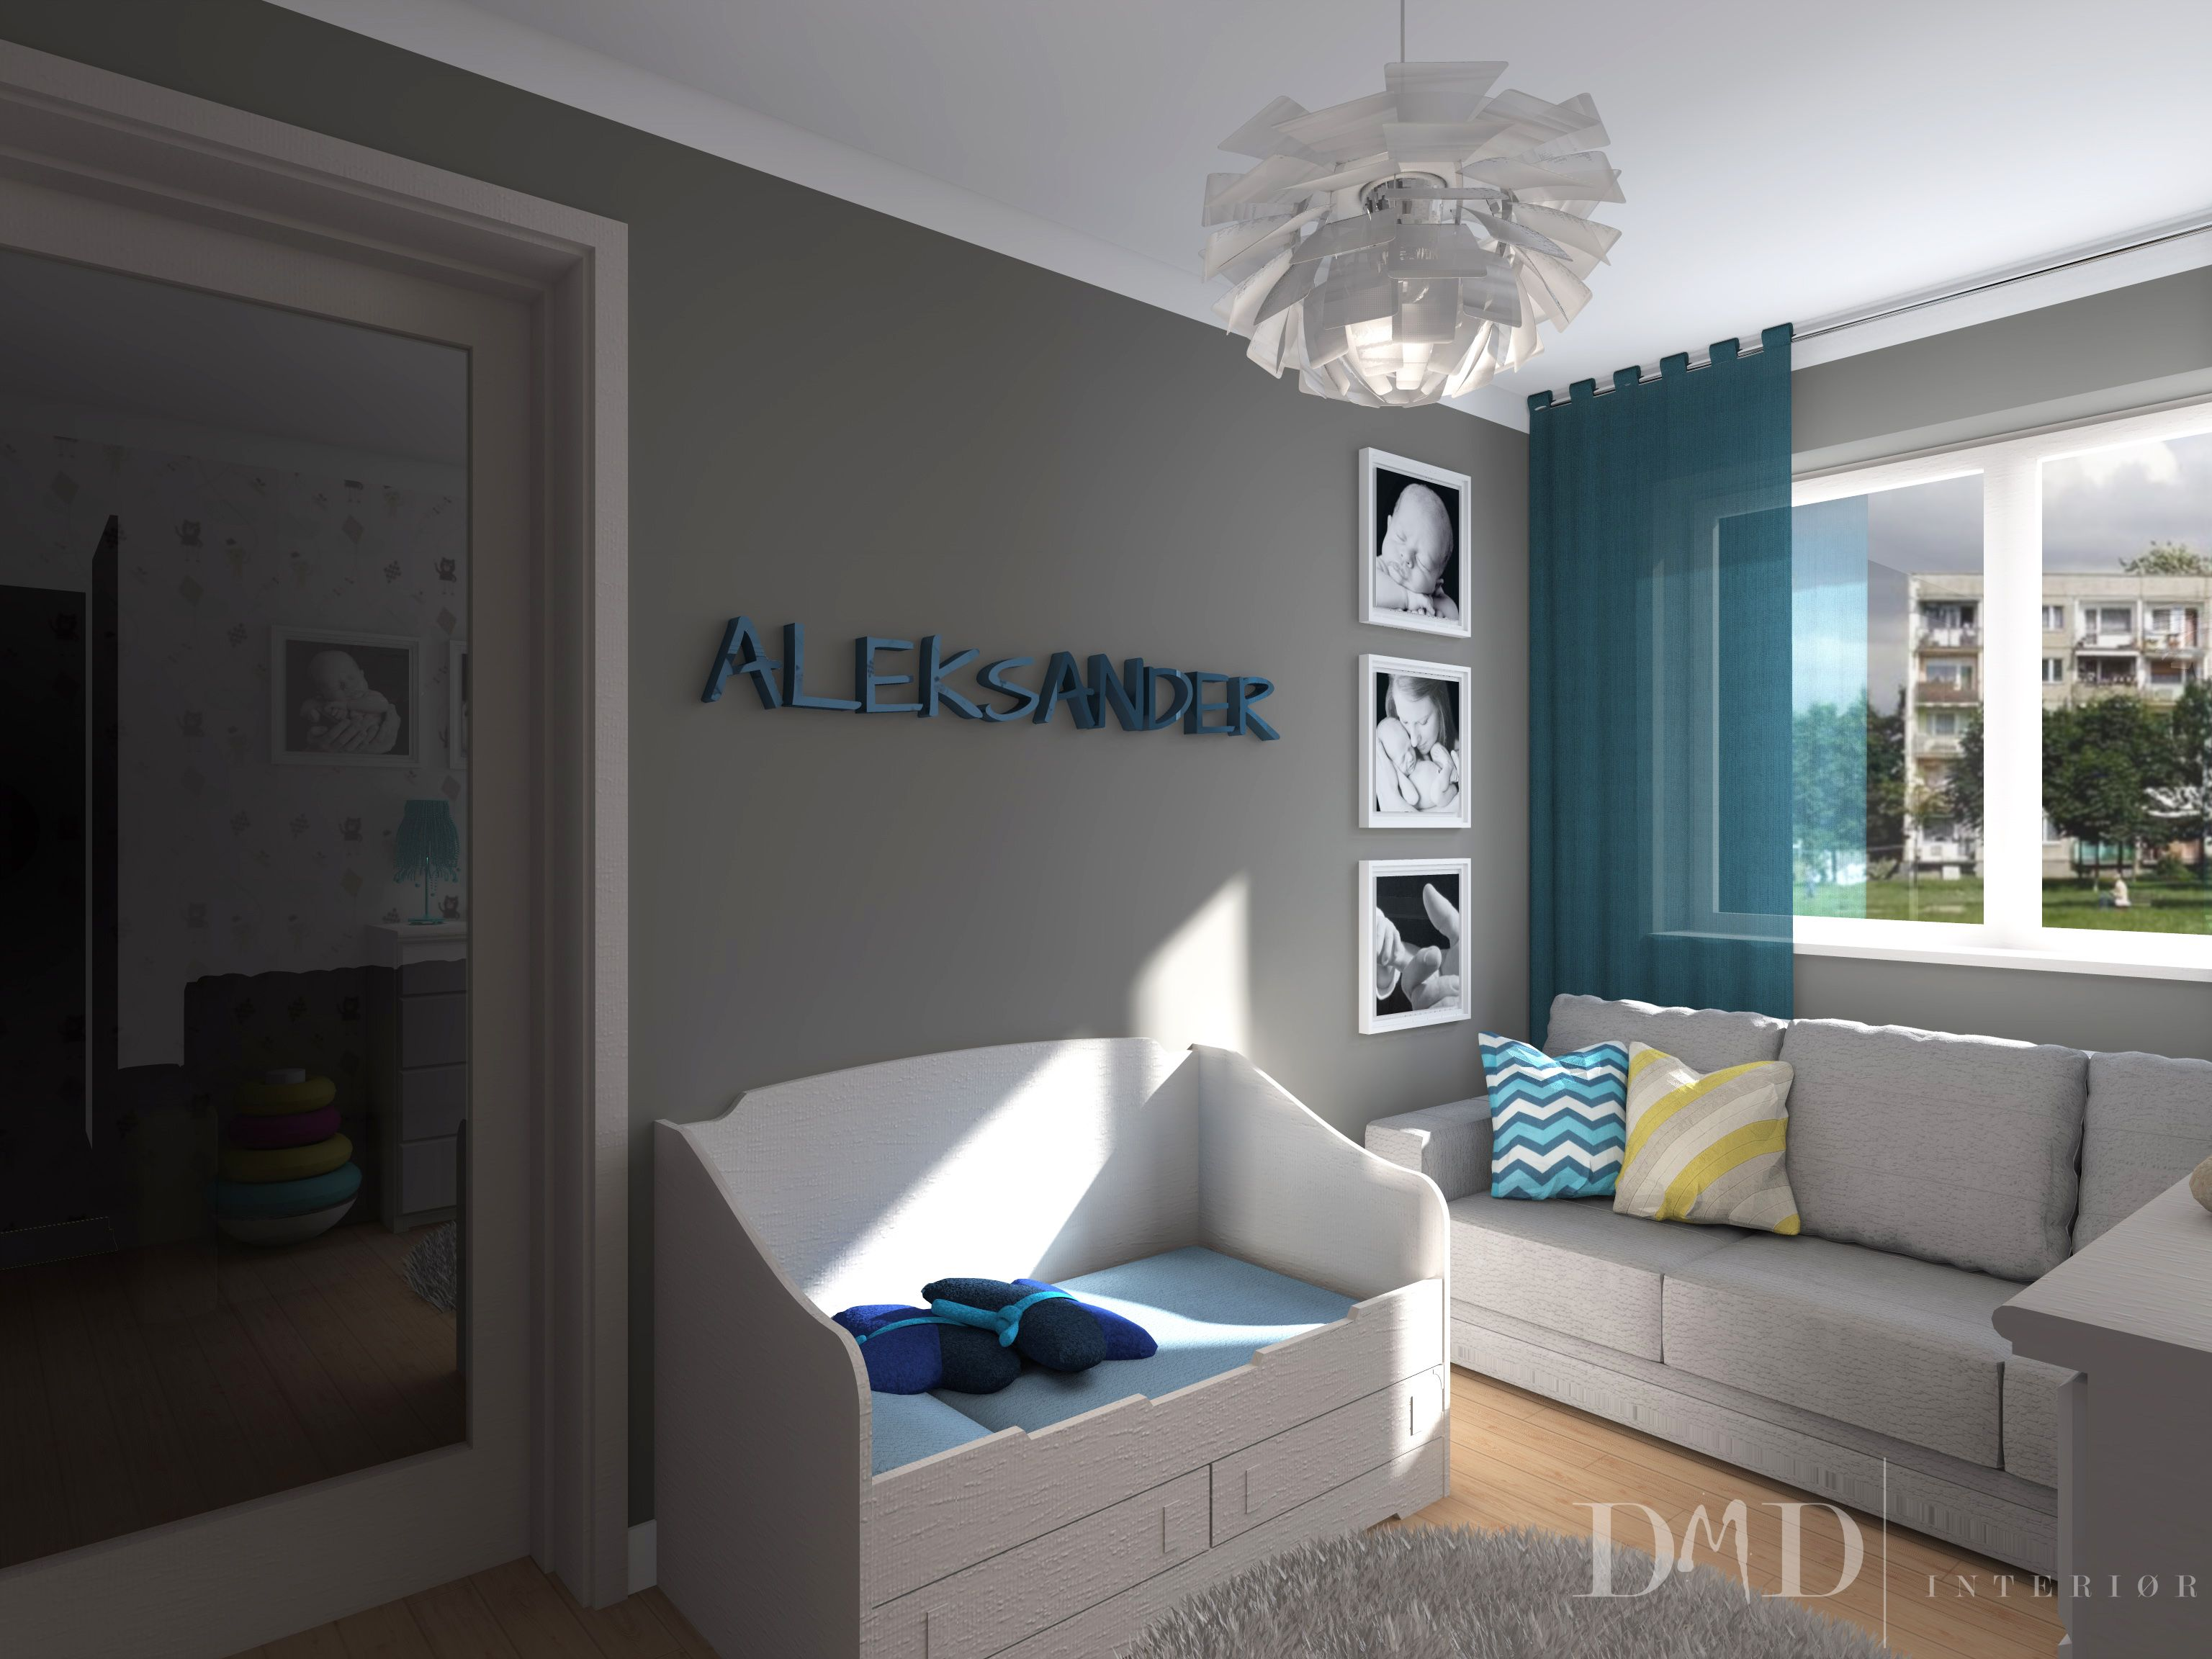 Interior design project for newborn baby boy- DMD interiør Bergen | Archicad 16 | Artlantis 4 www.dmdinterior.no